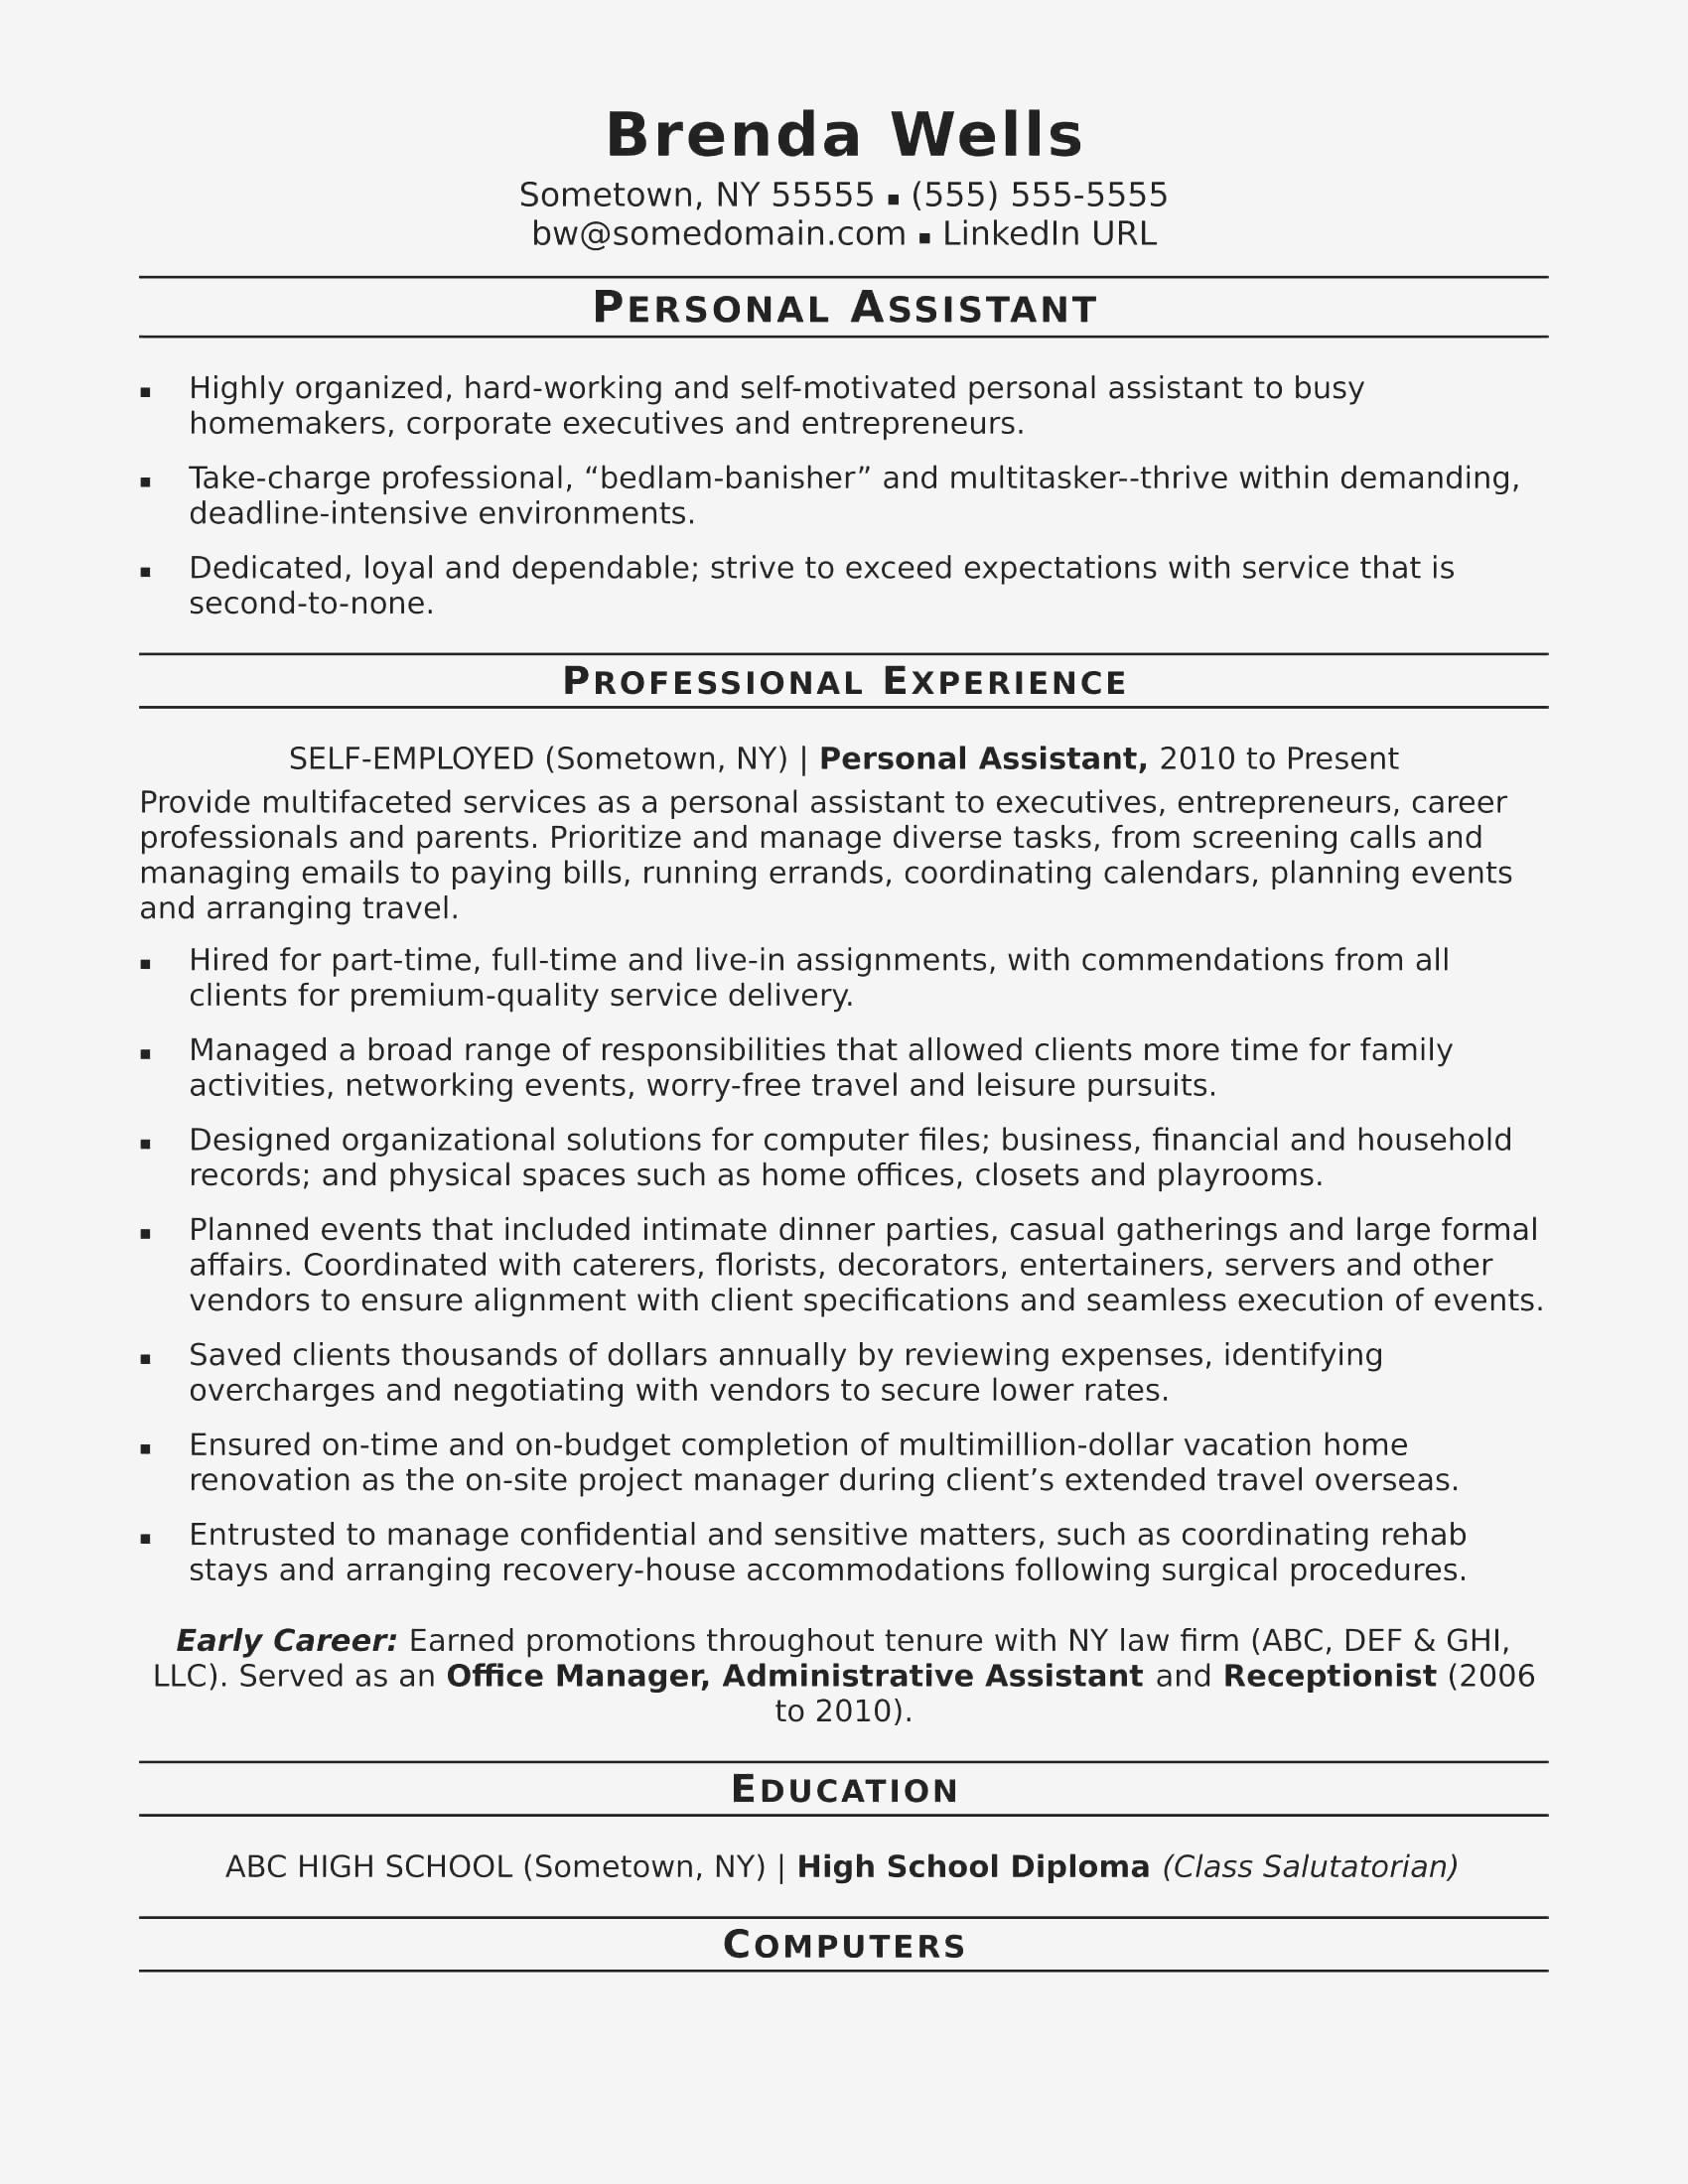 45 Inspirational Examples Of Resume Cover Letters For Administrative Assistants by Pics